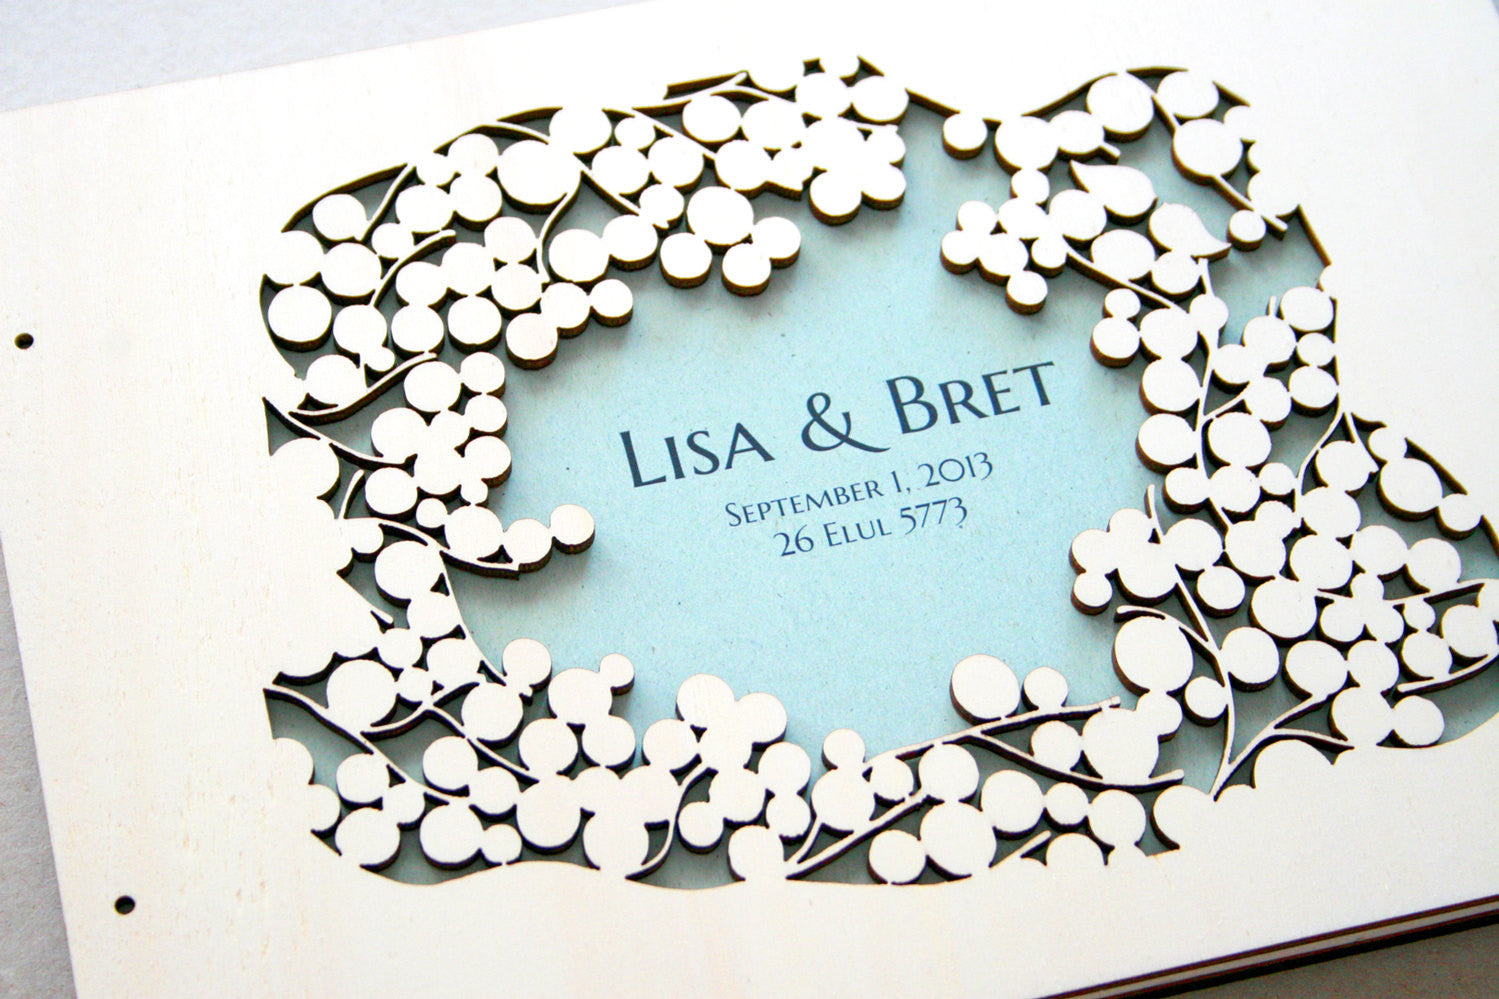 Woodcut Wedding Guest Book Album Branches with Love Birds, Modern minimalist anniversary guestbook album with woodcut covers